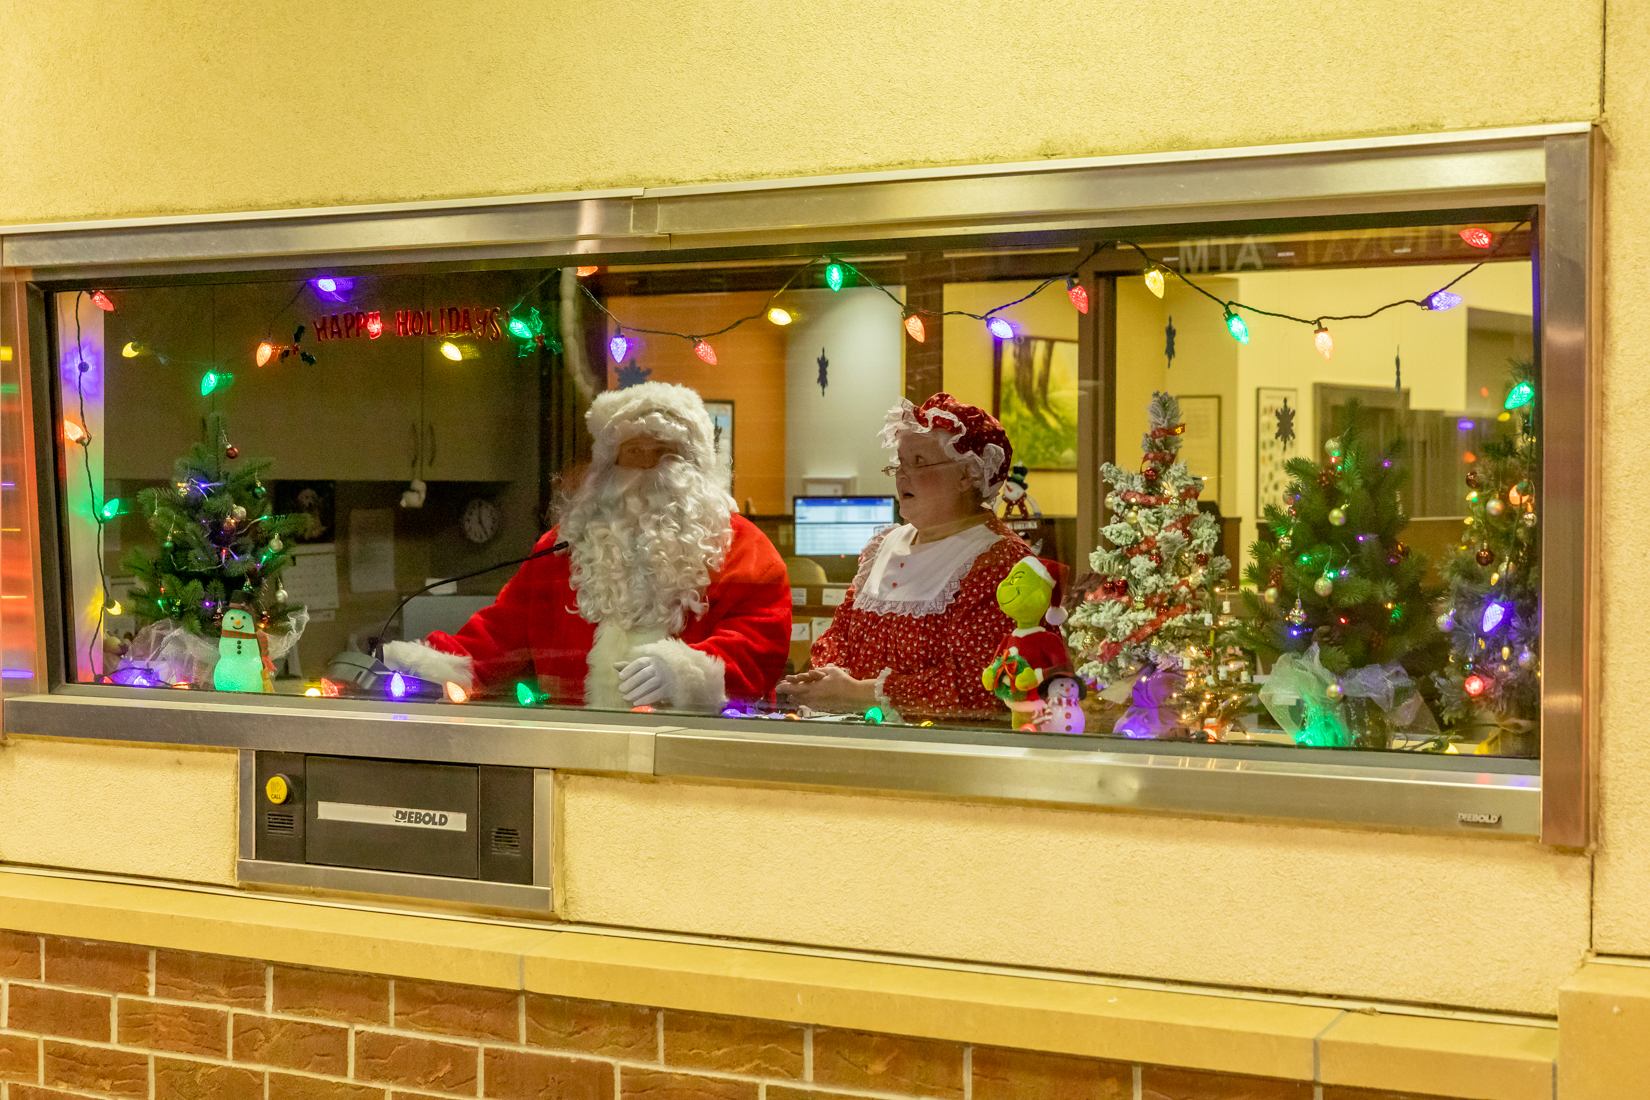 The drive thru window at First National Bank in Fairfax was the perfect place to see Santa and social distance at the same time.